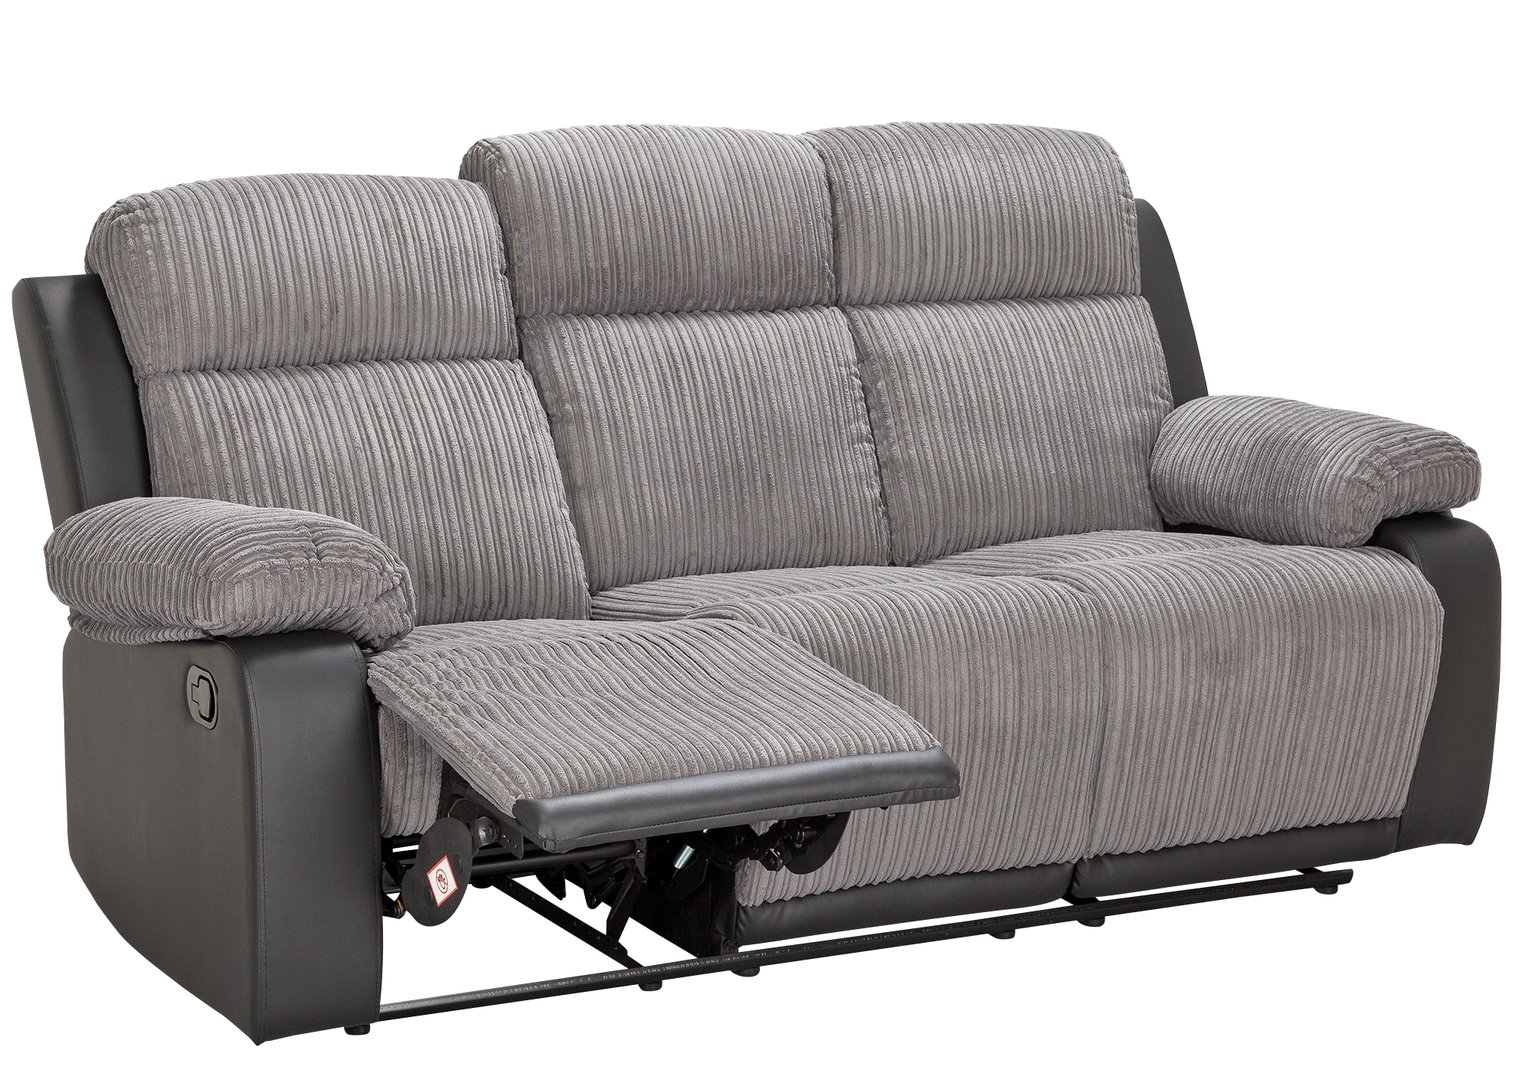 Collection Bradley 3 Seater Manual Recliner Sofa - Charcoal